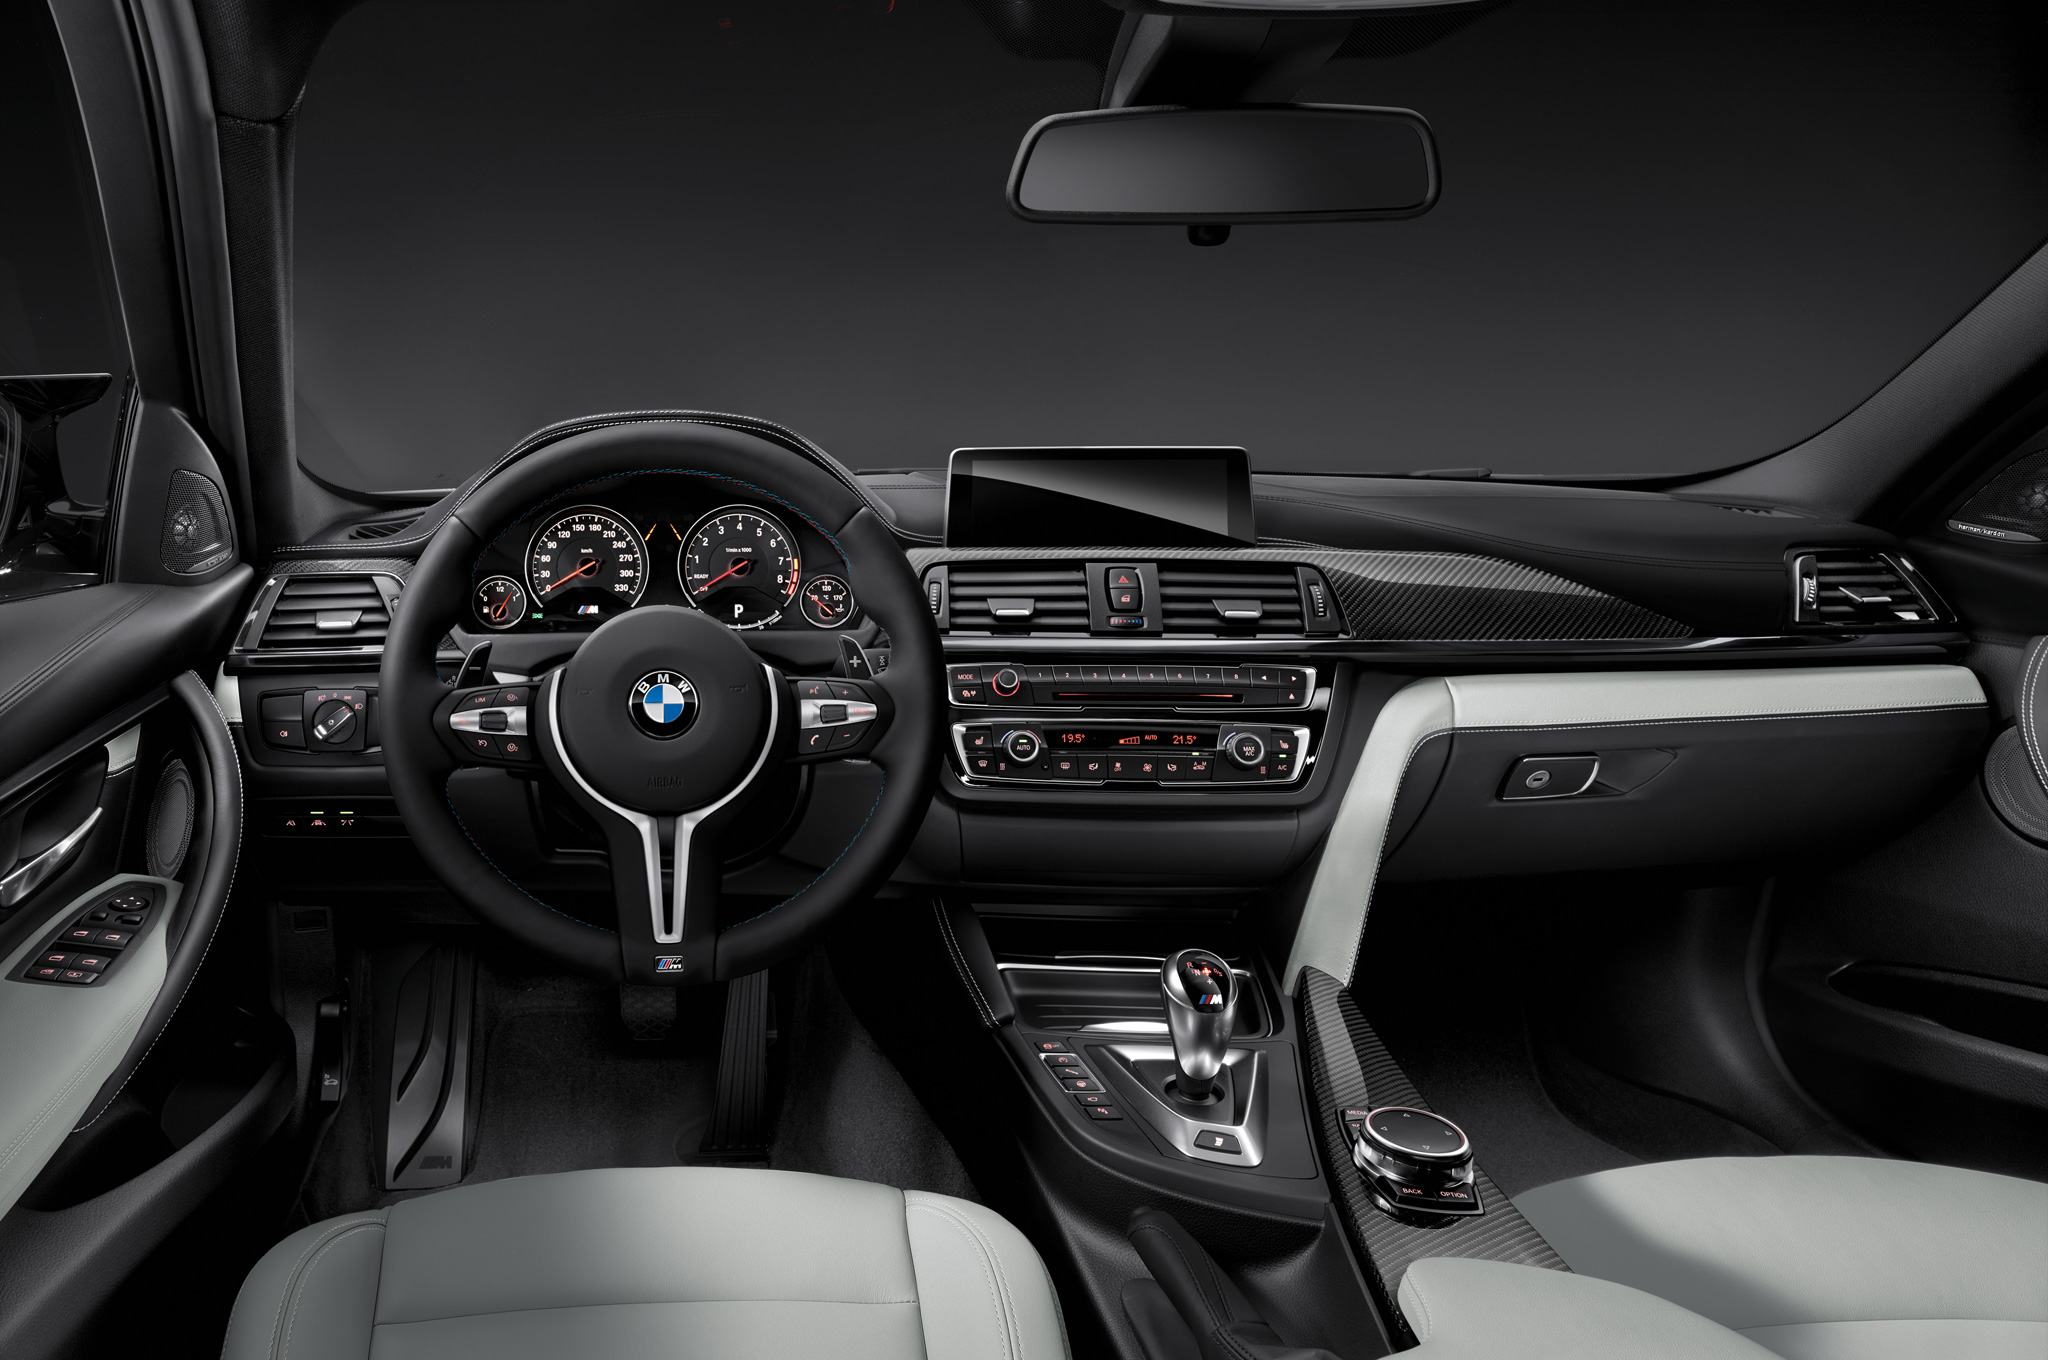 2015 bmw m3 dashboard and cockpit #363 | cars performance, reviews